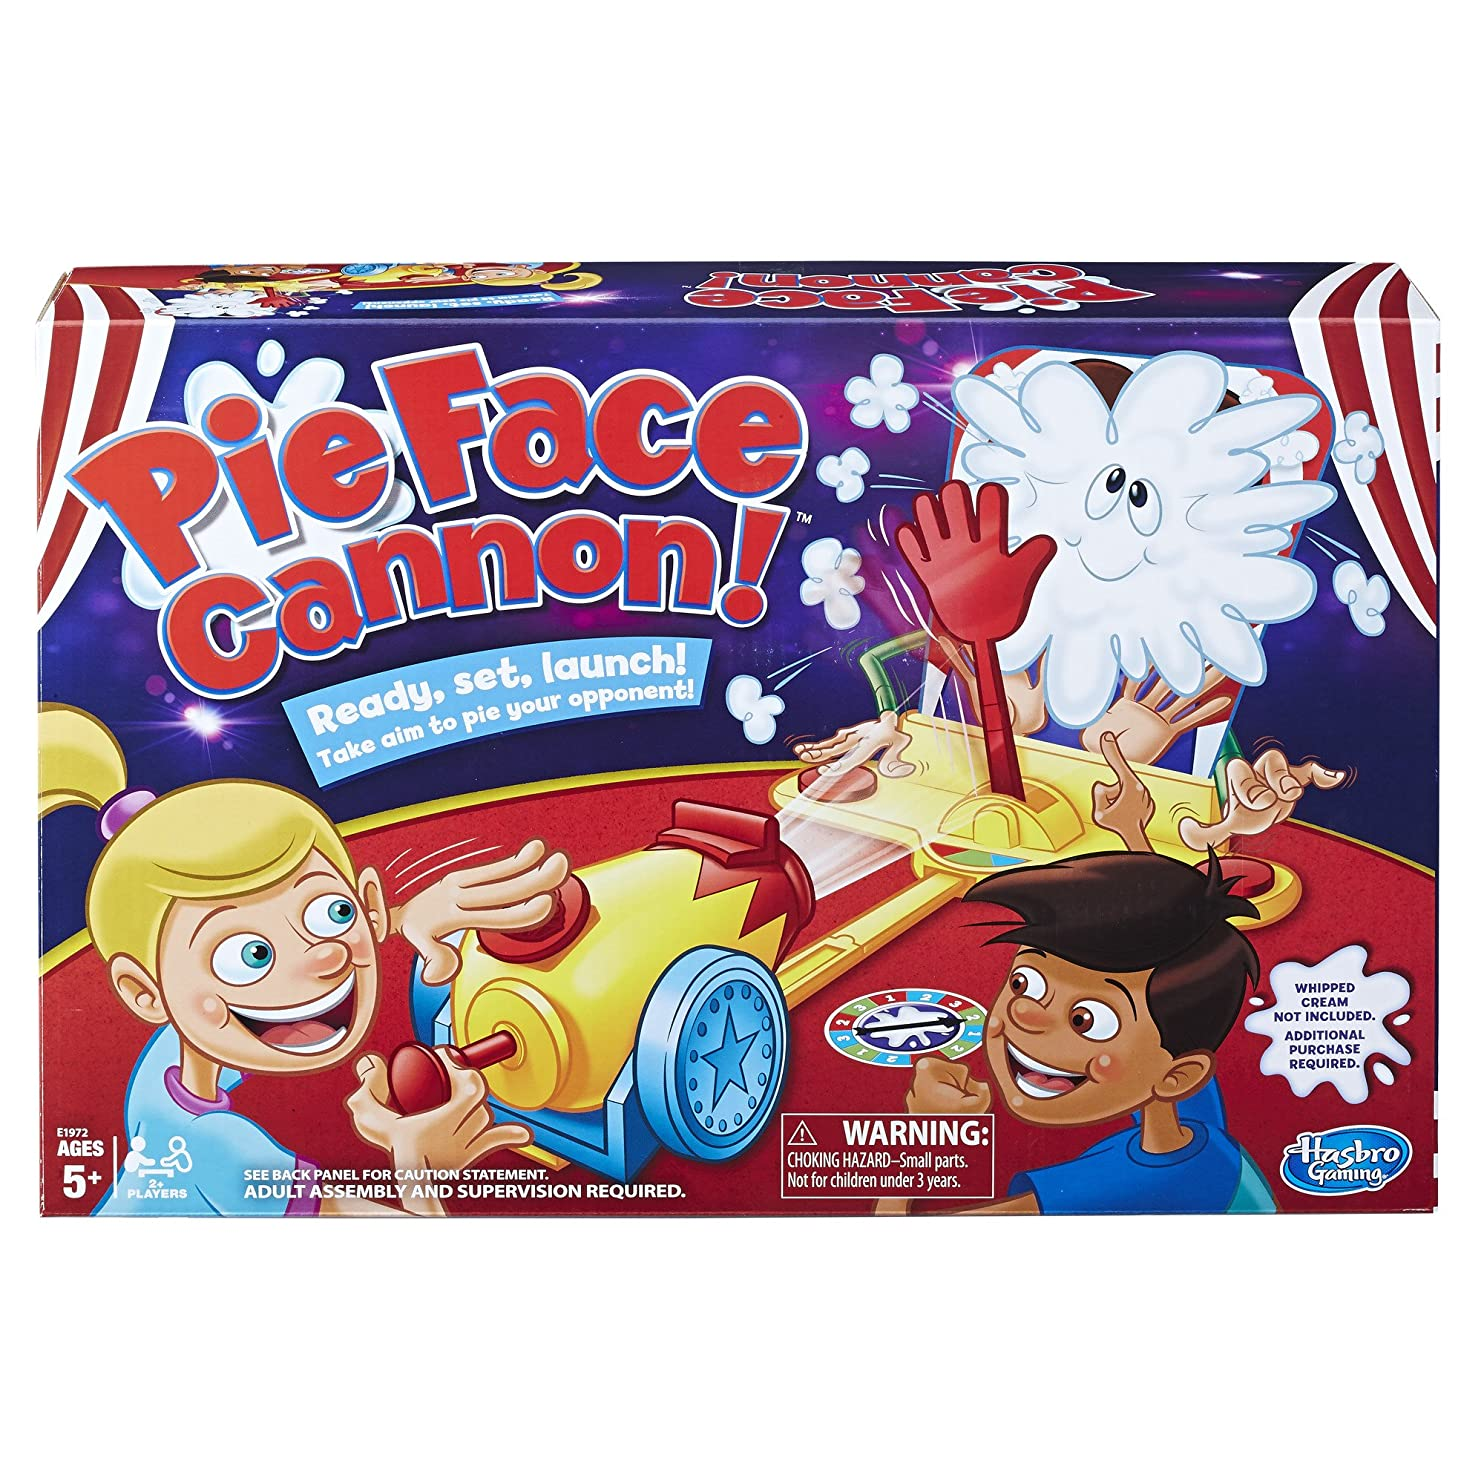 Pie Face Cannon Game Whipped Cream Family Board Game Kids Ages 5 and Up ziqbhneqmdm87